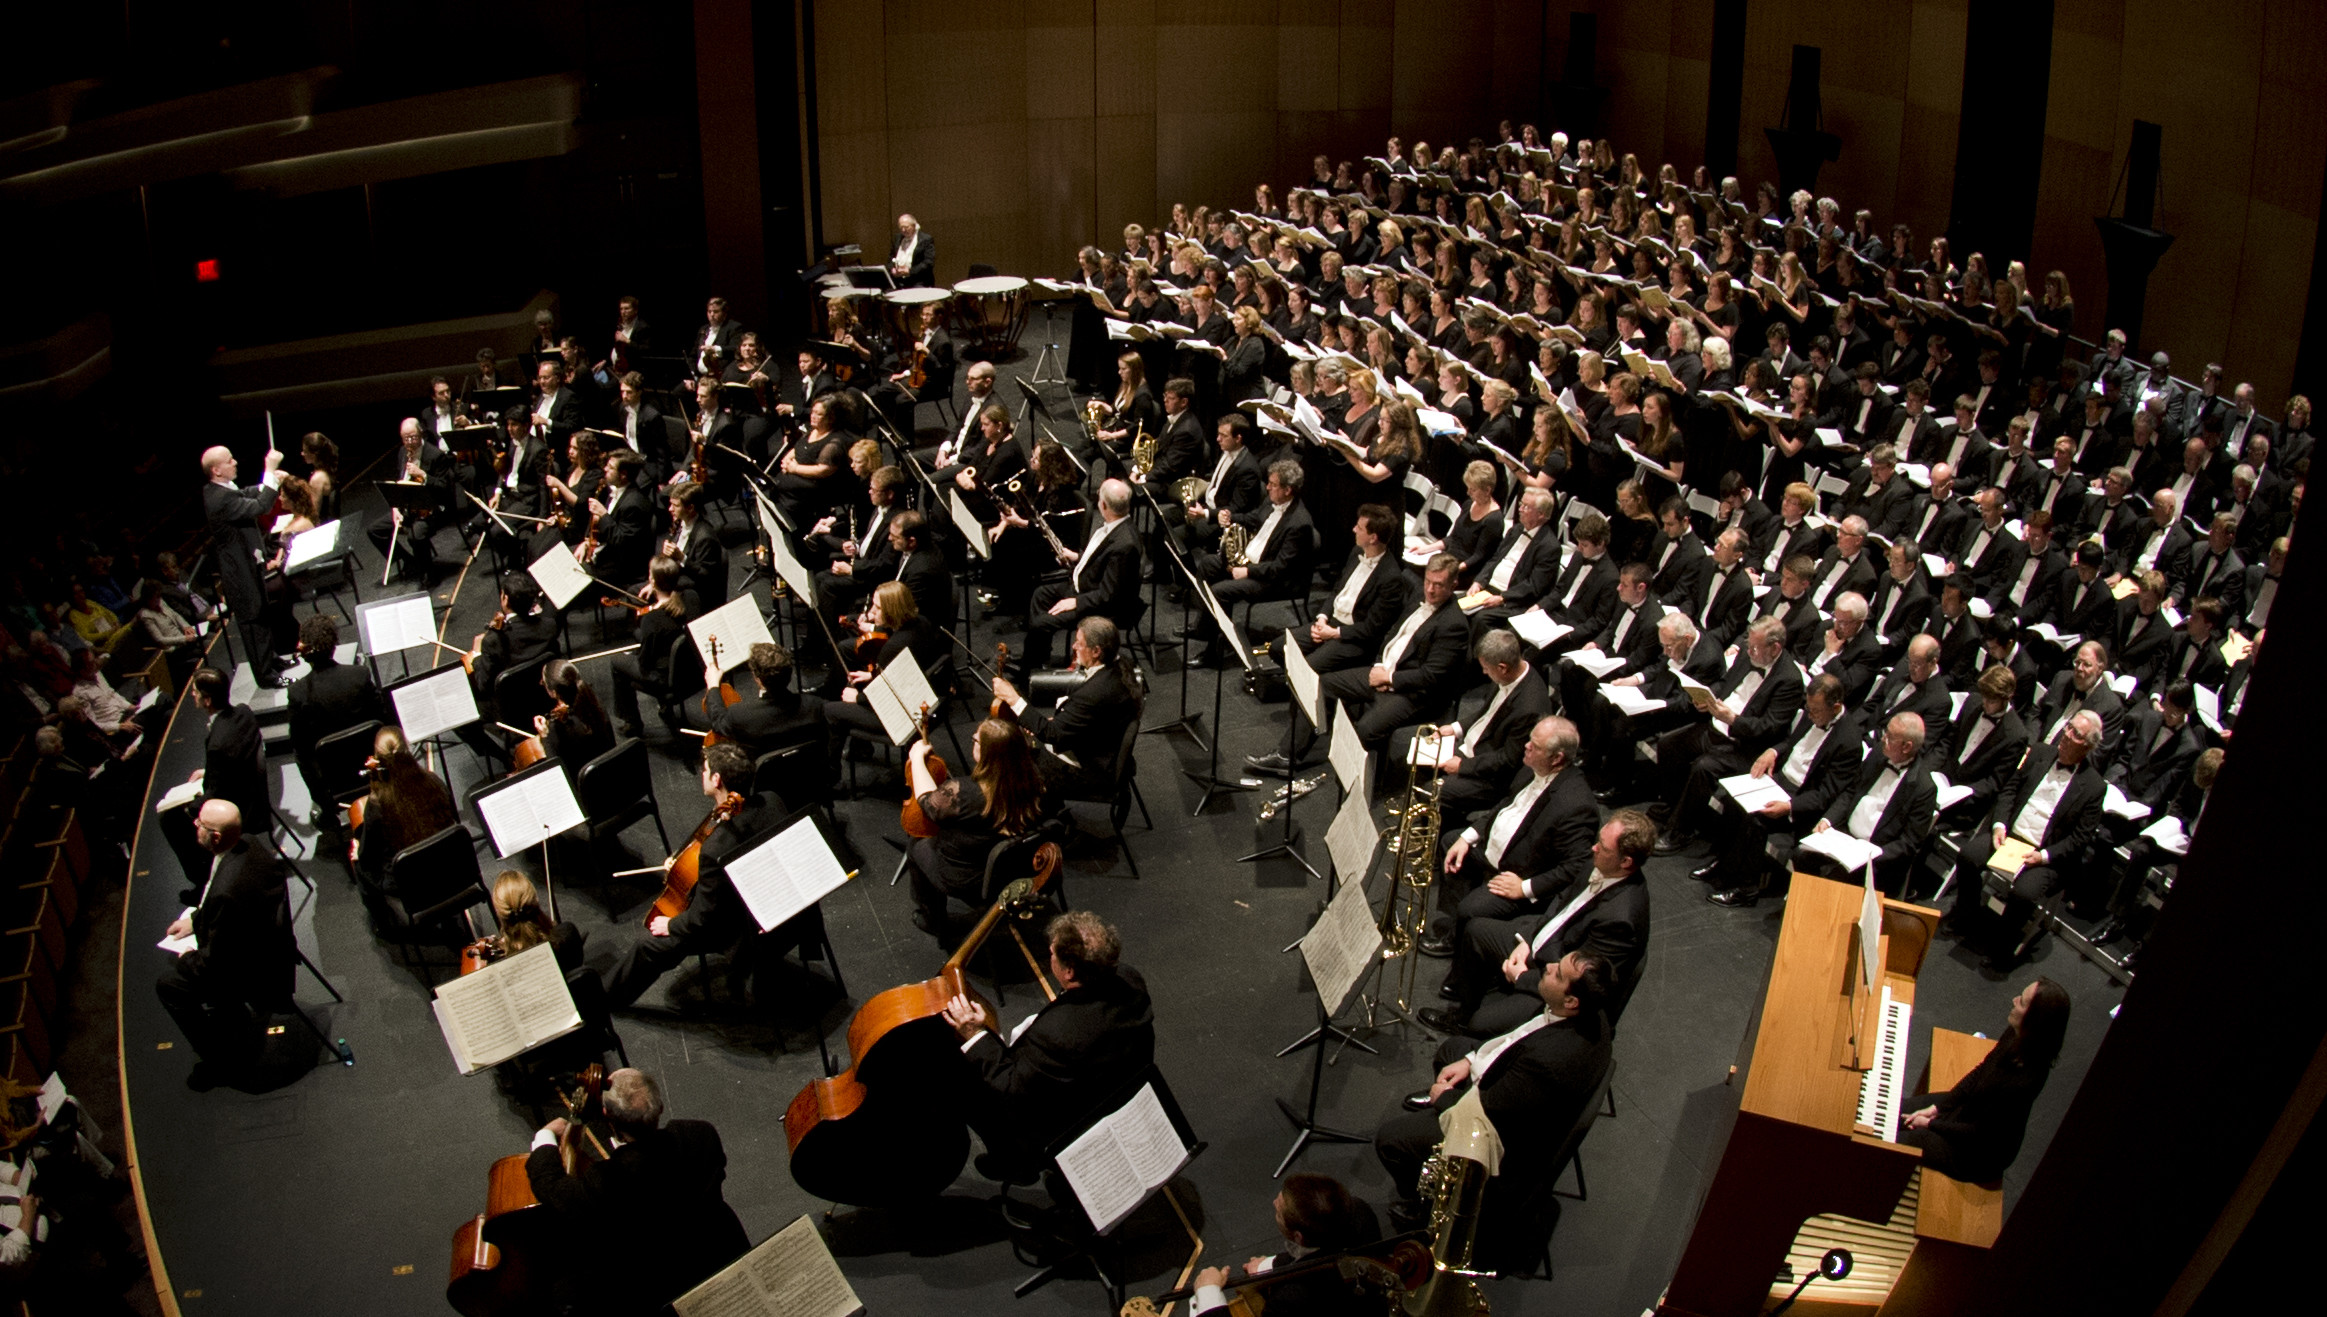 VT Choirs and Blacksburg Master Chorale perform at the Moss Arts Center grand opening